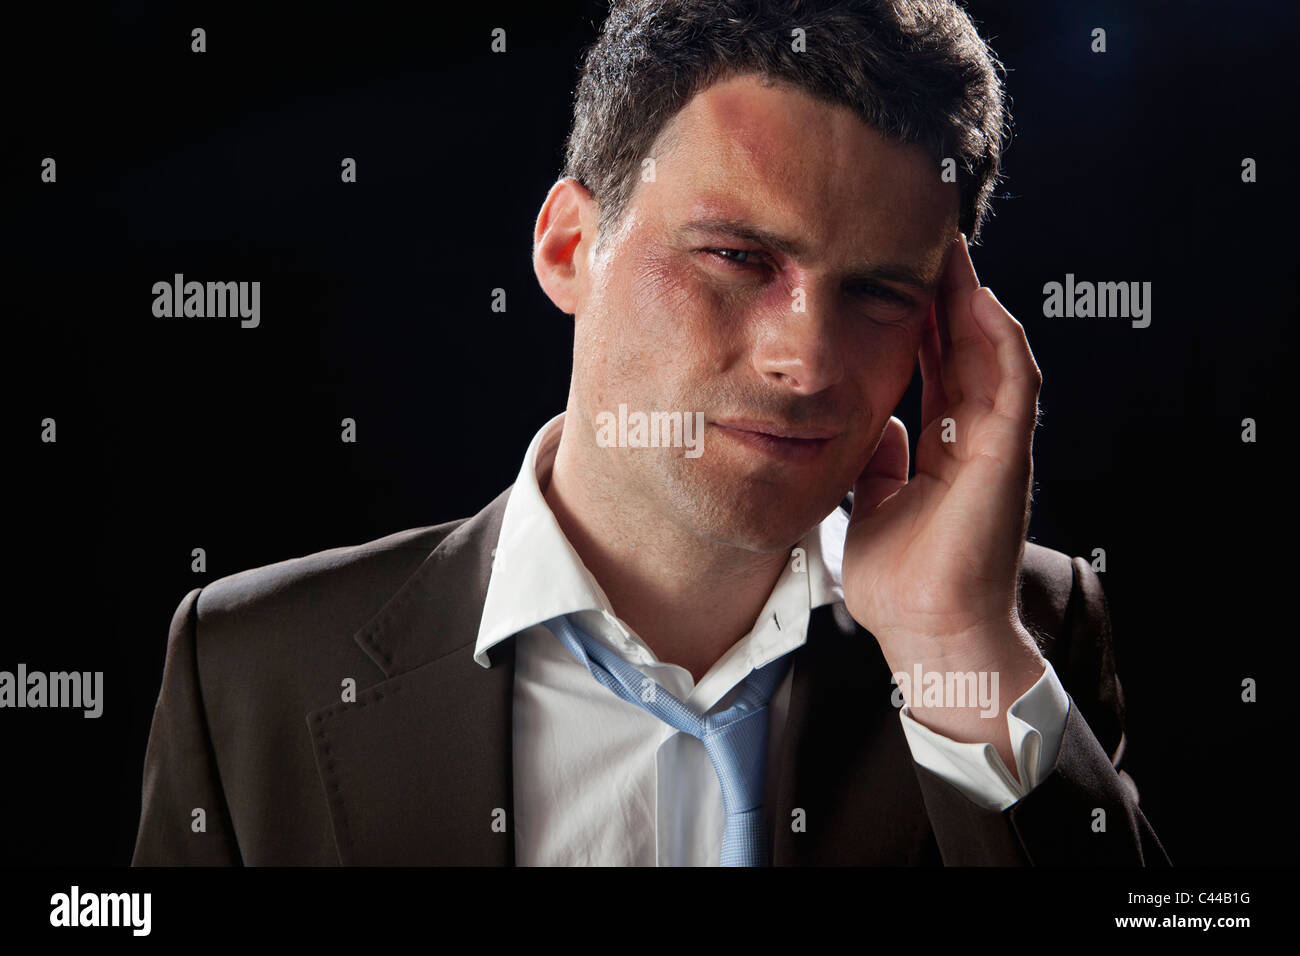 A beaten up businessman wincing in pain - Stock Image